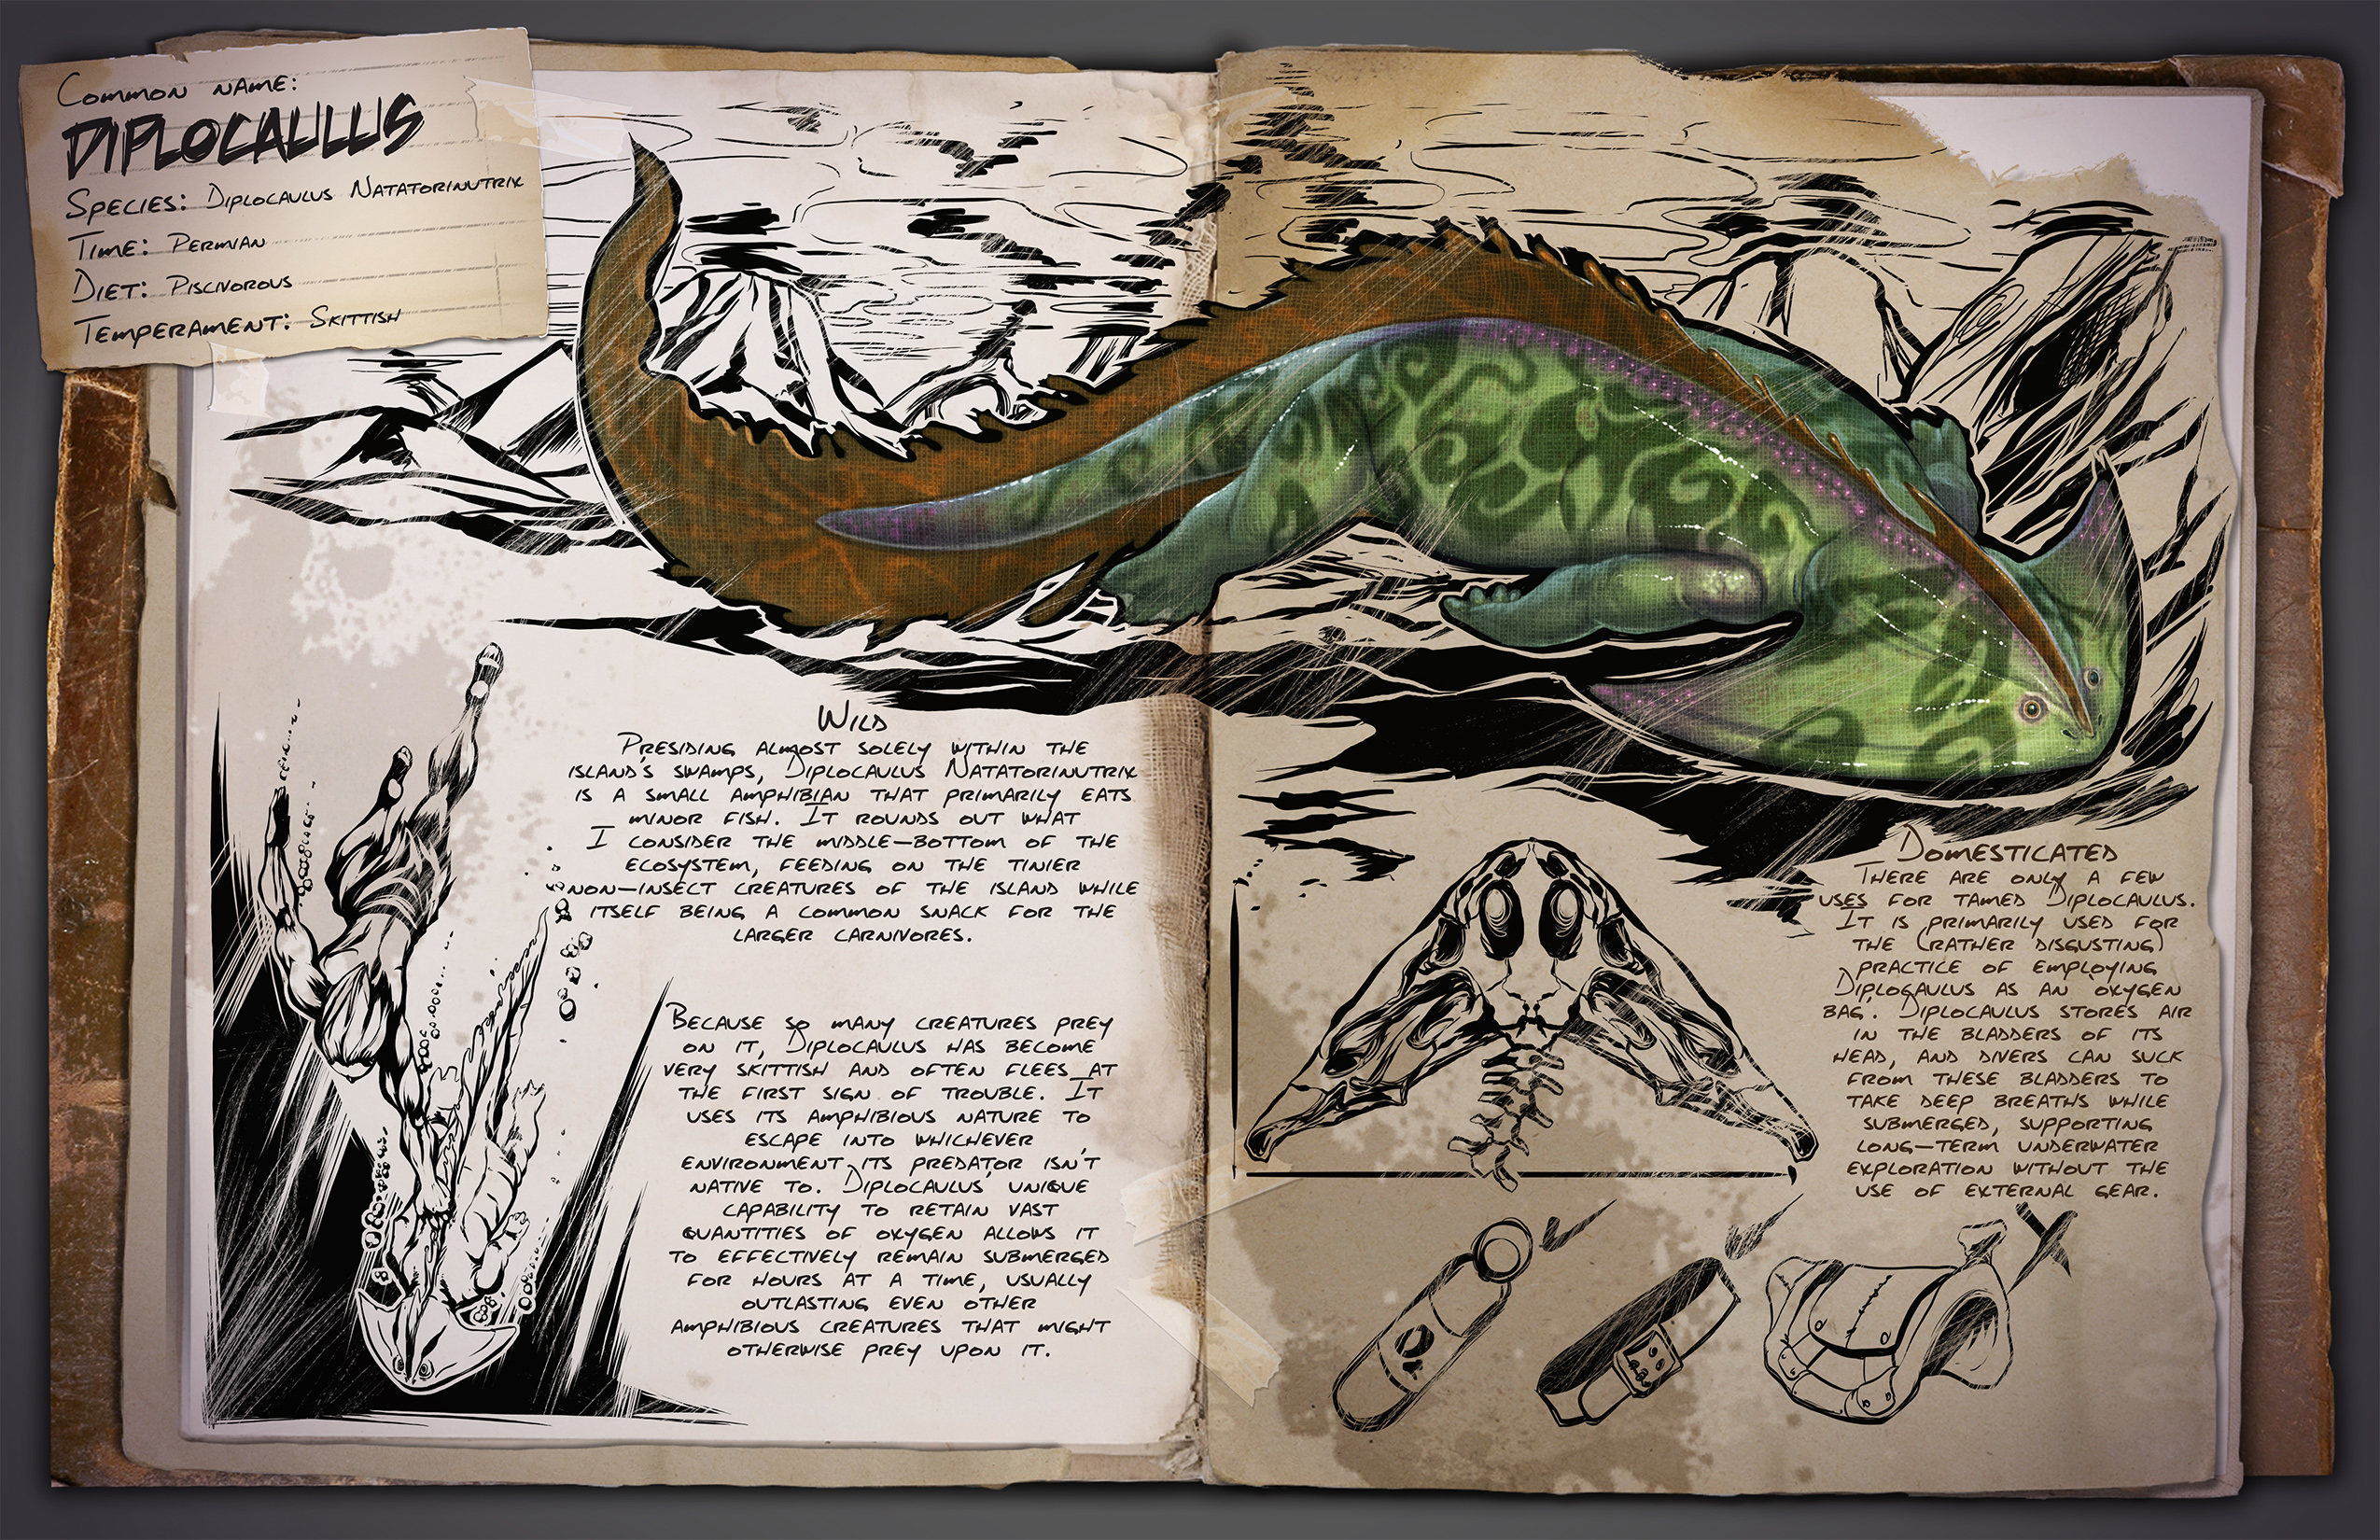 Oct 20 2016 Patch 248 Procedurally Generated Maps Kaprosuchus Diplocaulus Chalicotherium And More Ark Survival Evolved Jat Https Www Youtube Com Watch V 1fvd8c1d0we Patch 248 Expands Ark Survival Evolved Today In Many Ways Other information includes an admin spawn command generator, blueprint, name tag and entity class. steam